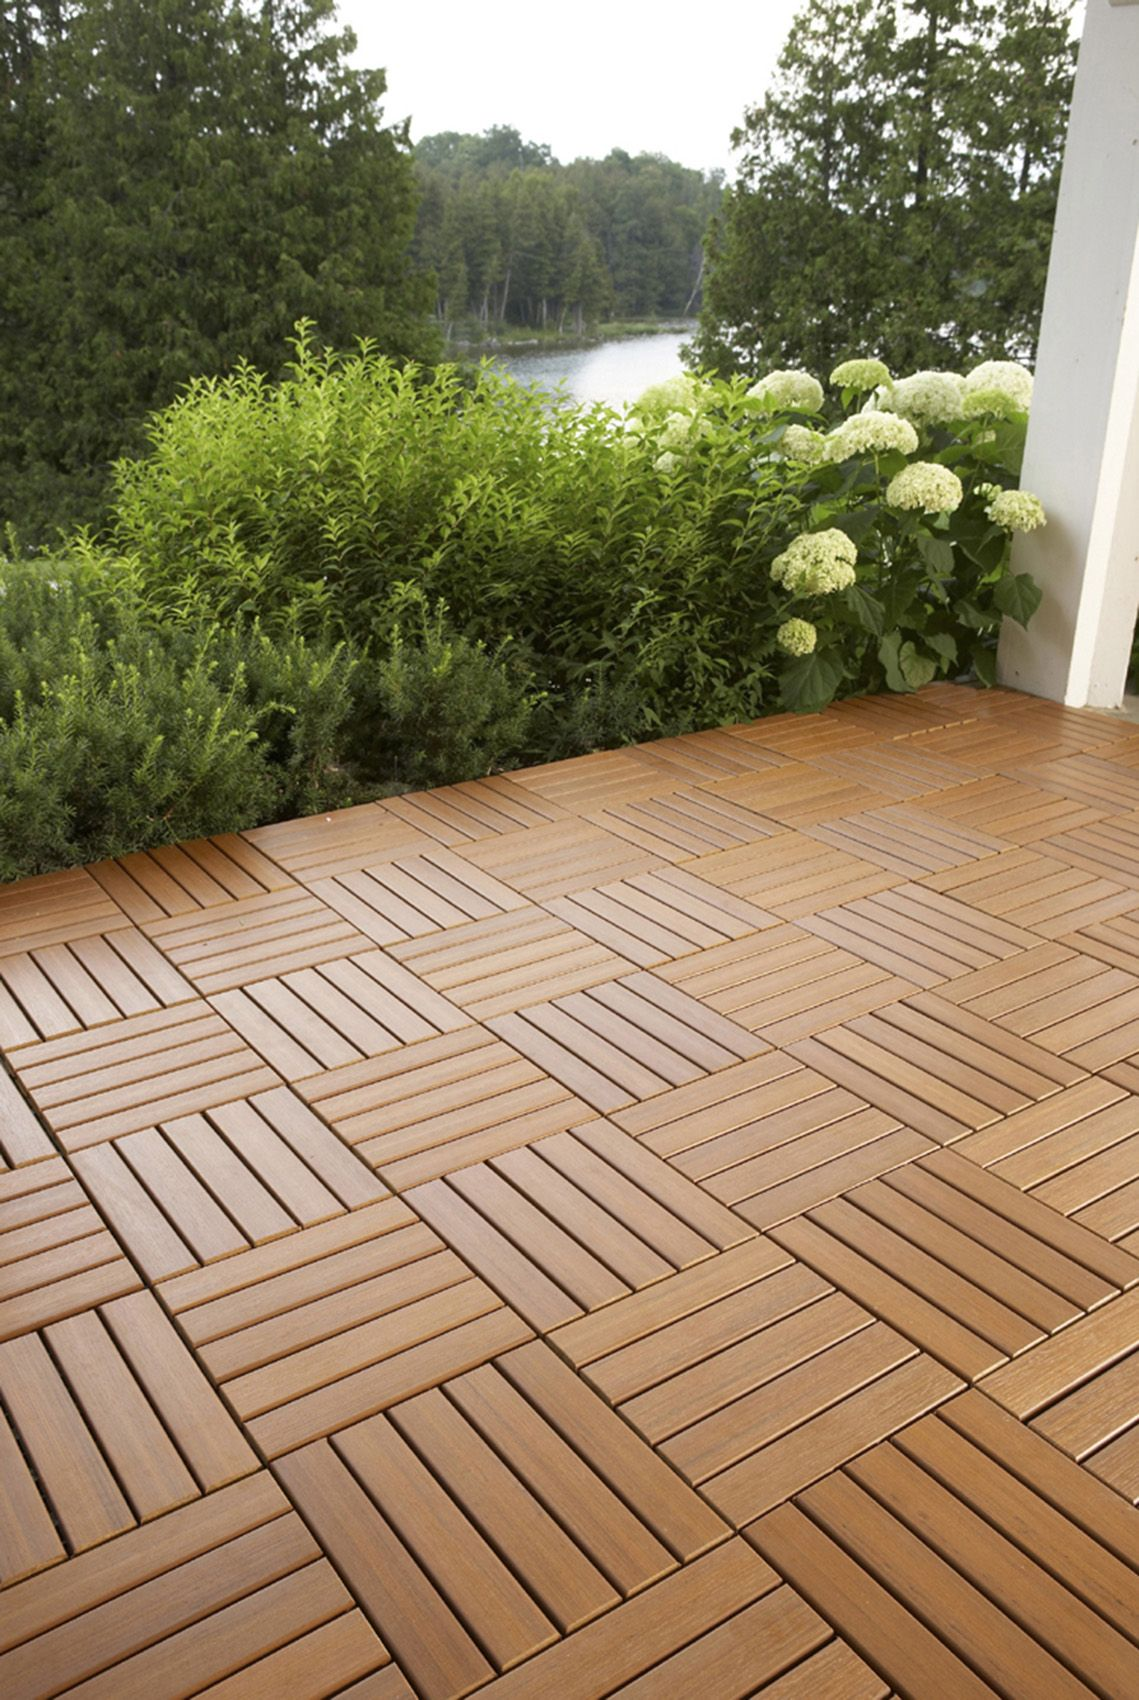 Premium Resin Deck Tile Cedar 12 X12 X1 Patio Flooring Outdoor Gardens Backyard